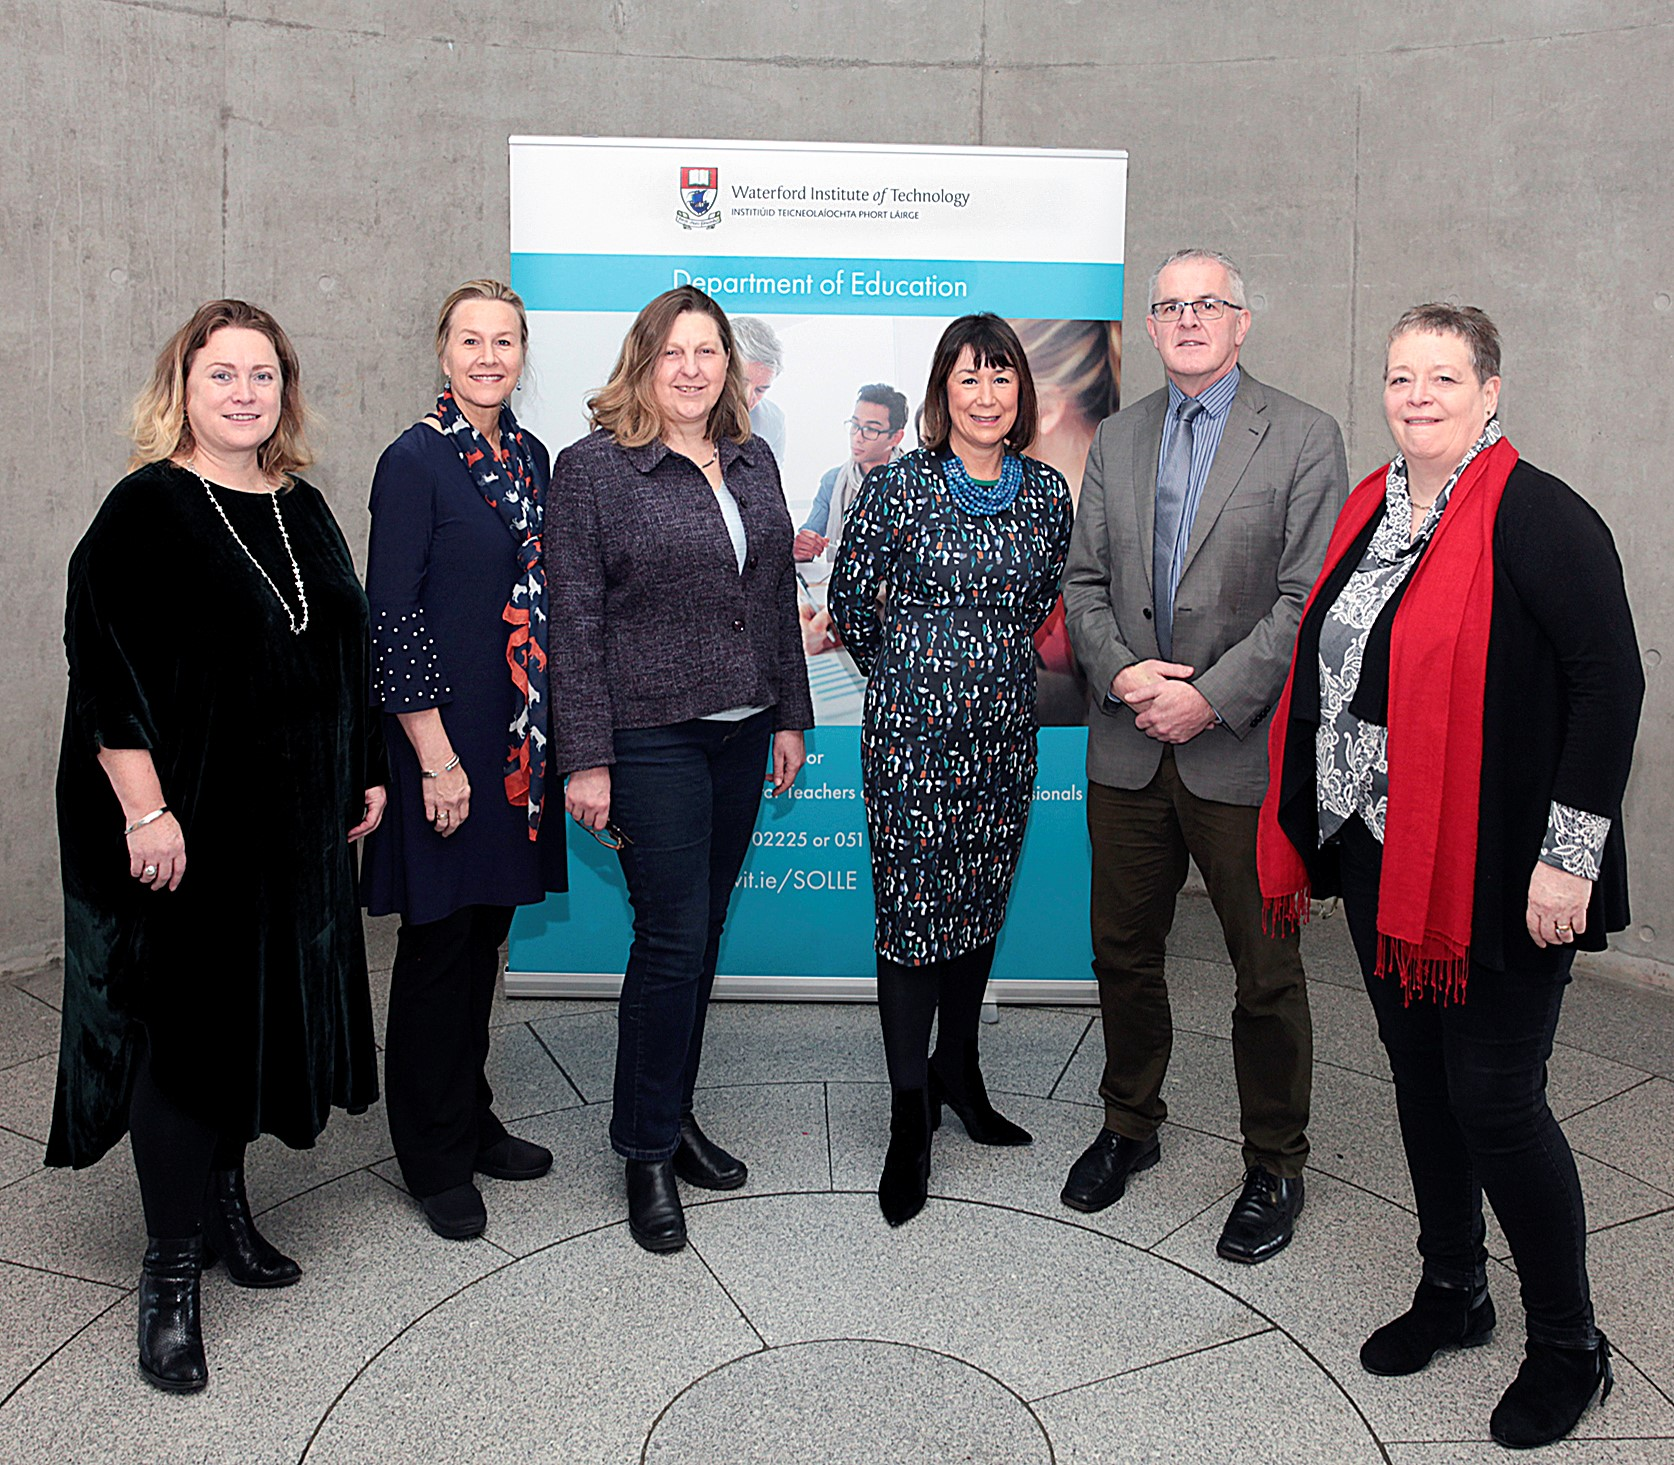 Pictured from left are: Dr. Mary Fenton, WIT, Dr. Leslie Cordie, Auburn University, USA; Professor Jackie Potter, Oxford Brookes University, U.K; Dr. Helen Murphy, WIT; Professor Paul Conway, University of Limerick; Dr. Anne Graham Cagney, WIT. Photo by: George Goulding.